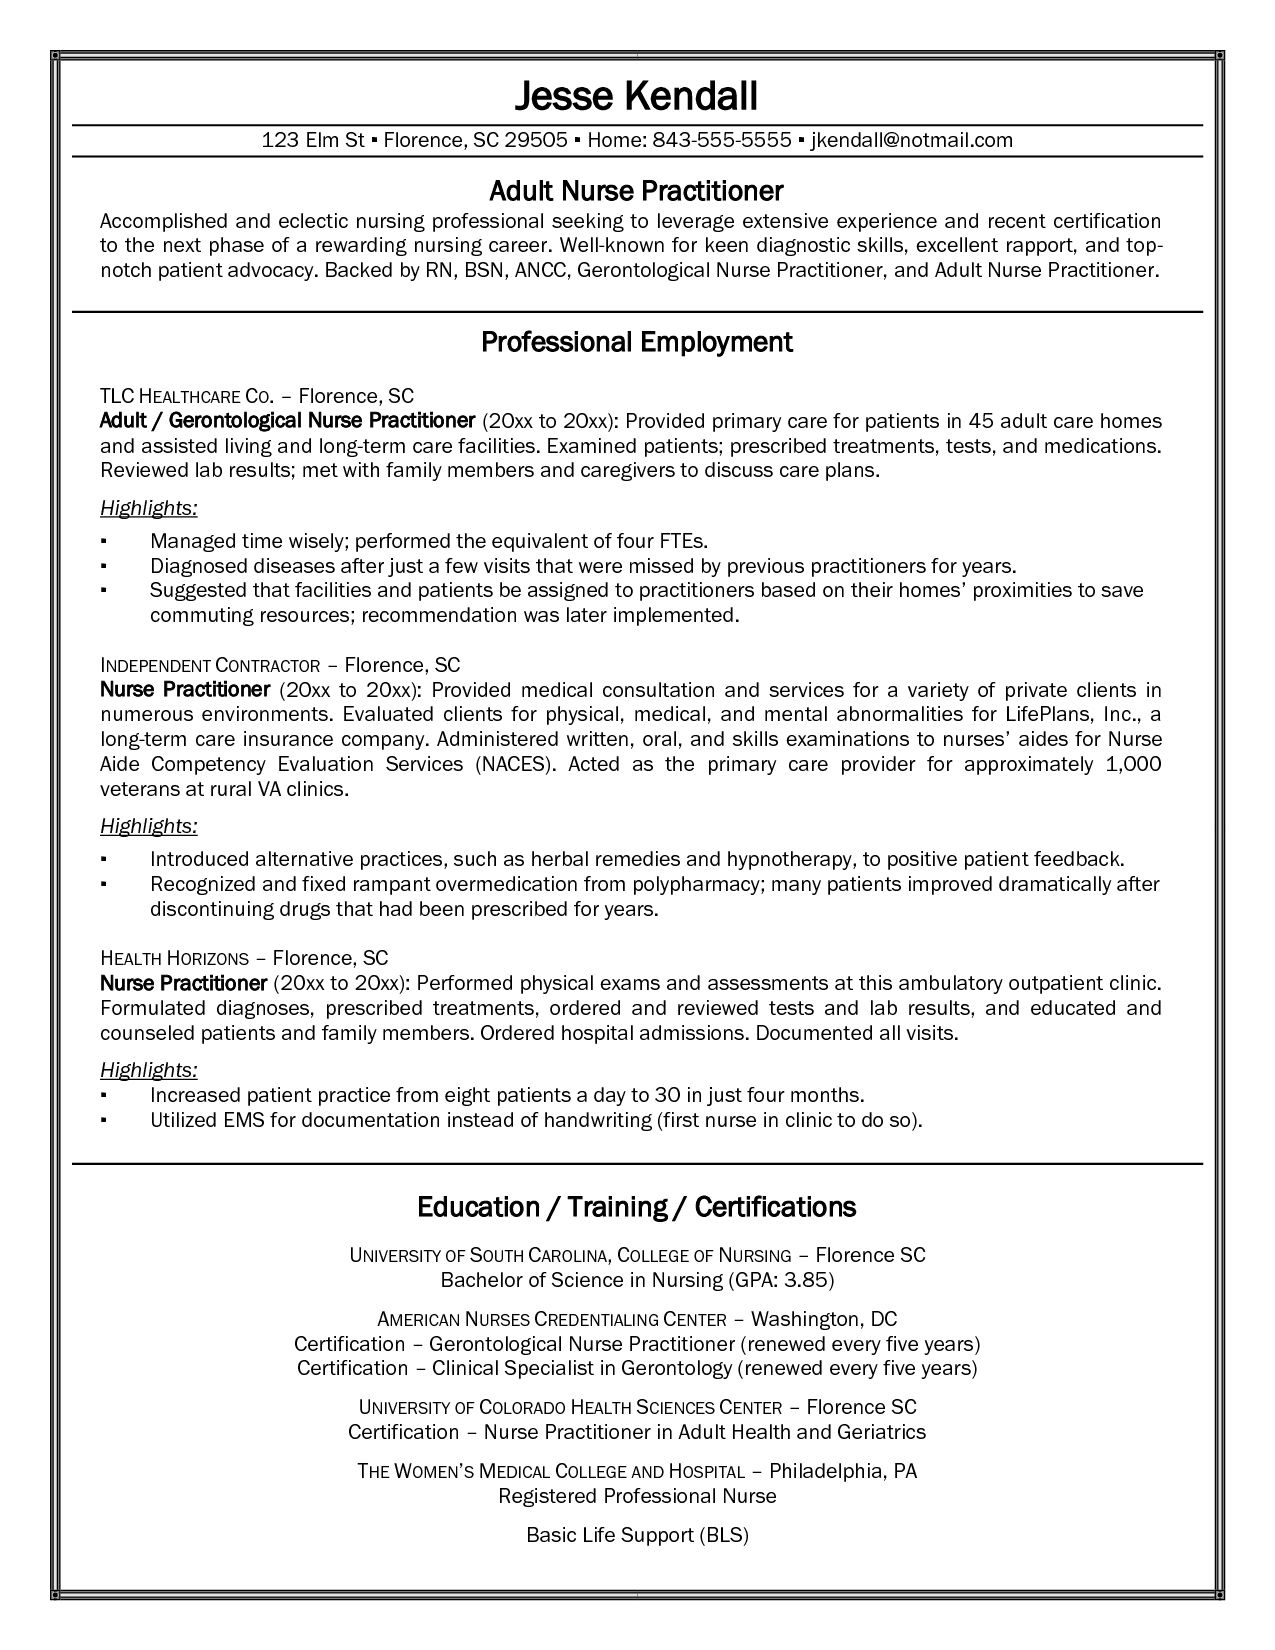 Cv Template Nurse Practitioner Nursing Resume Template